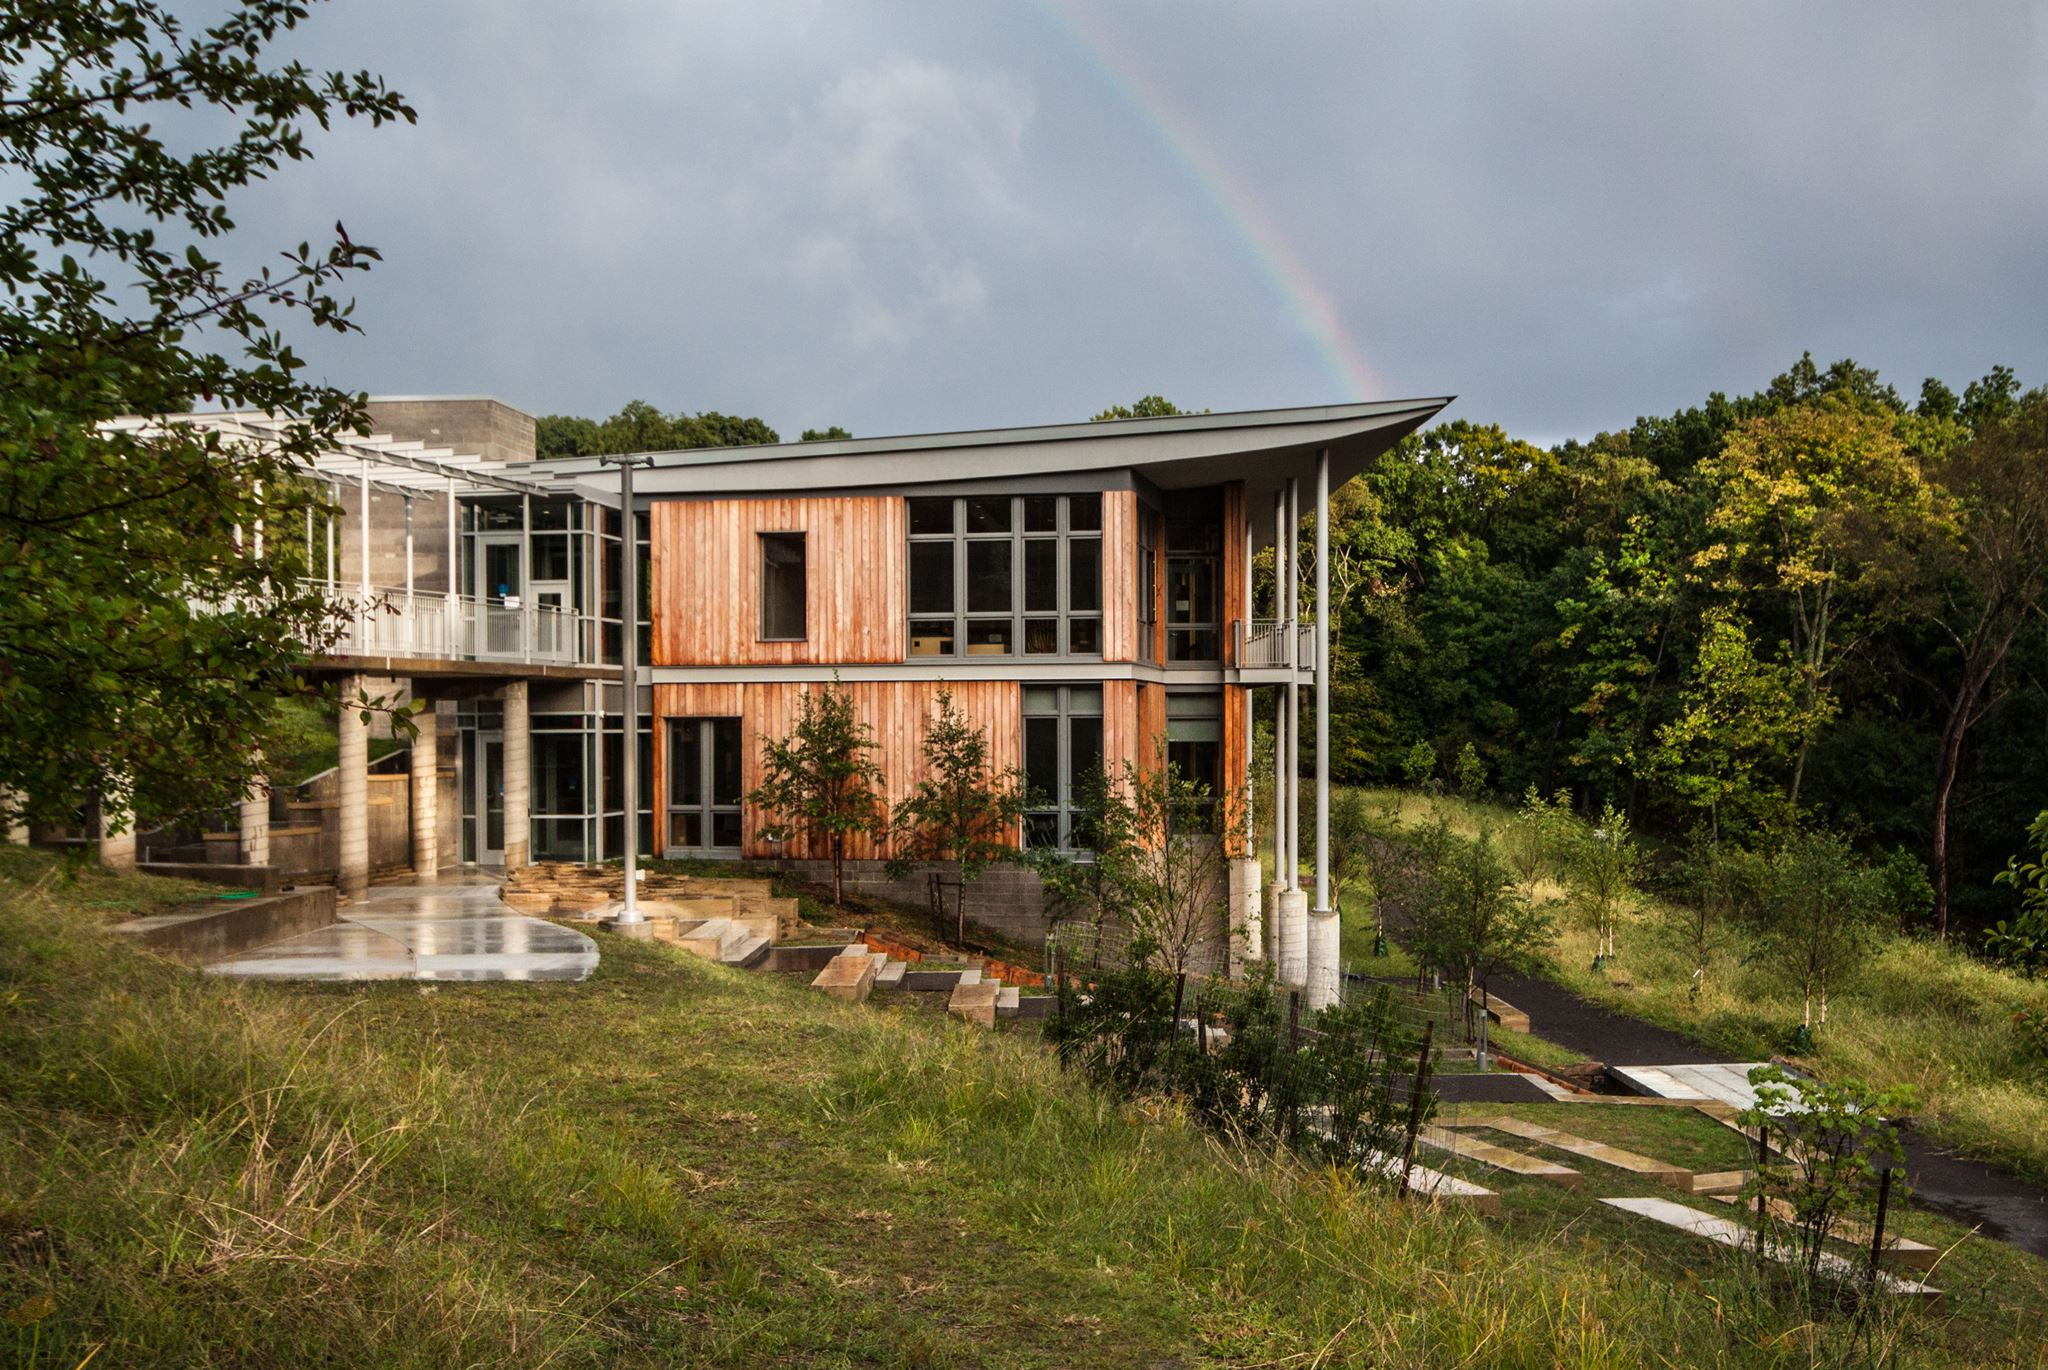 Rainbow in the sky at Frick Environmental Center